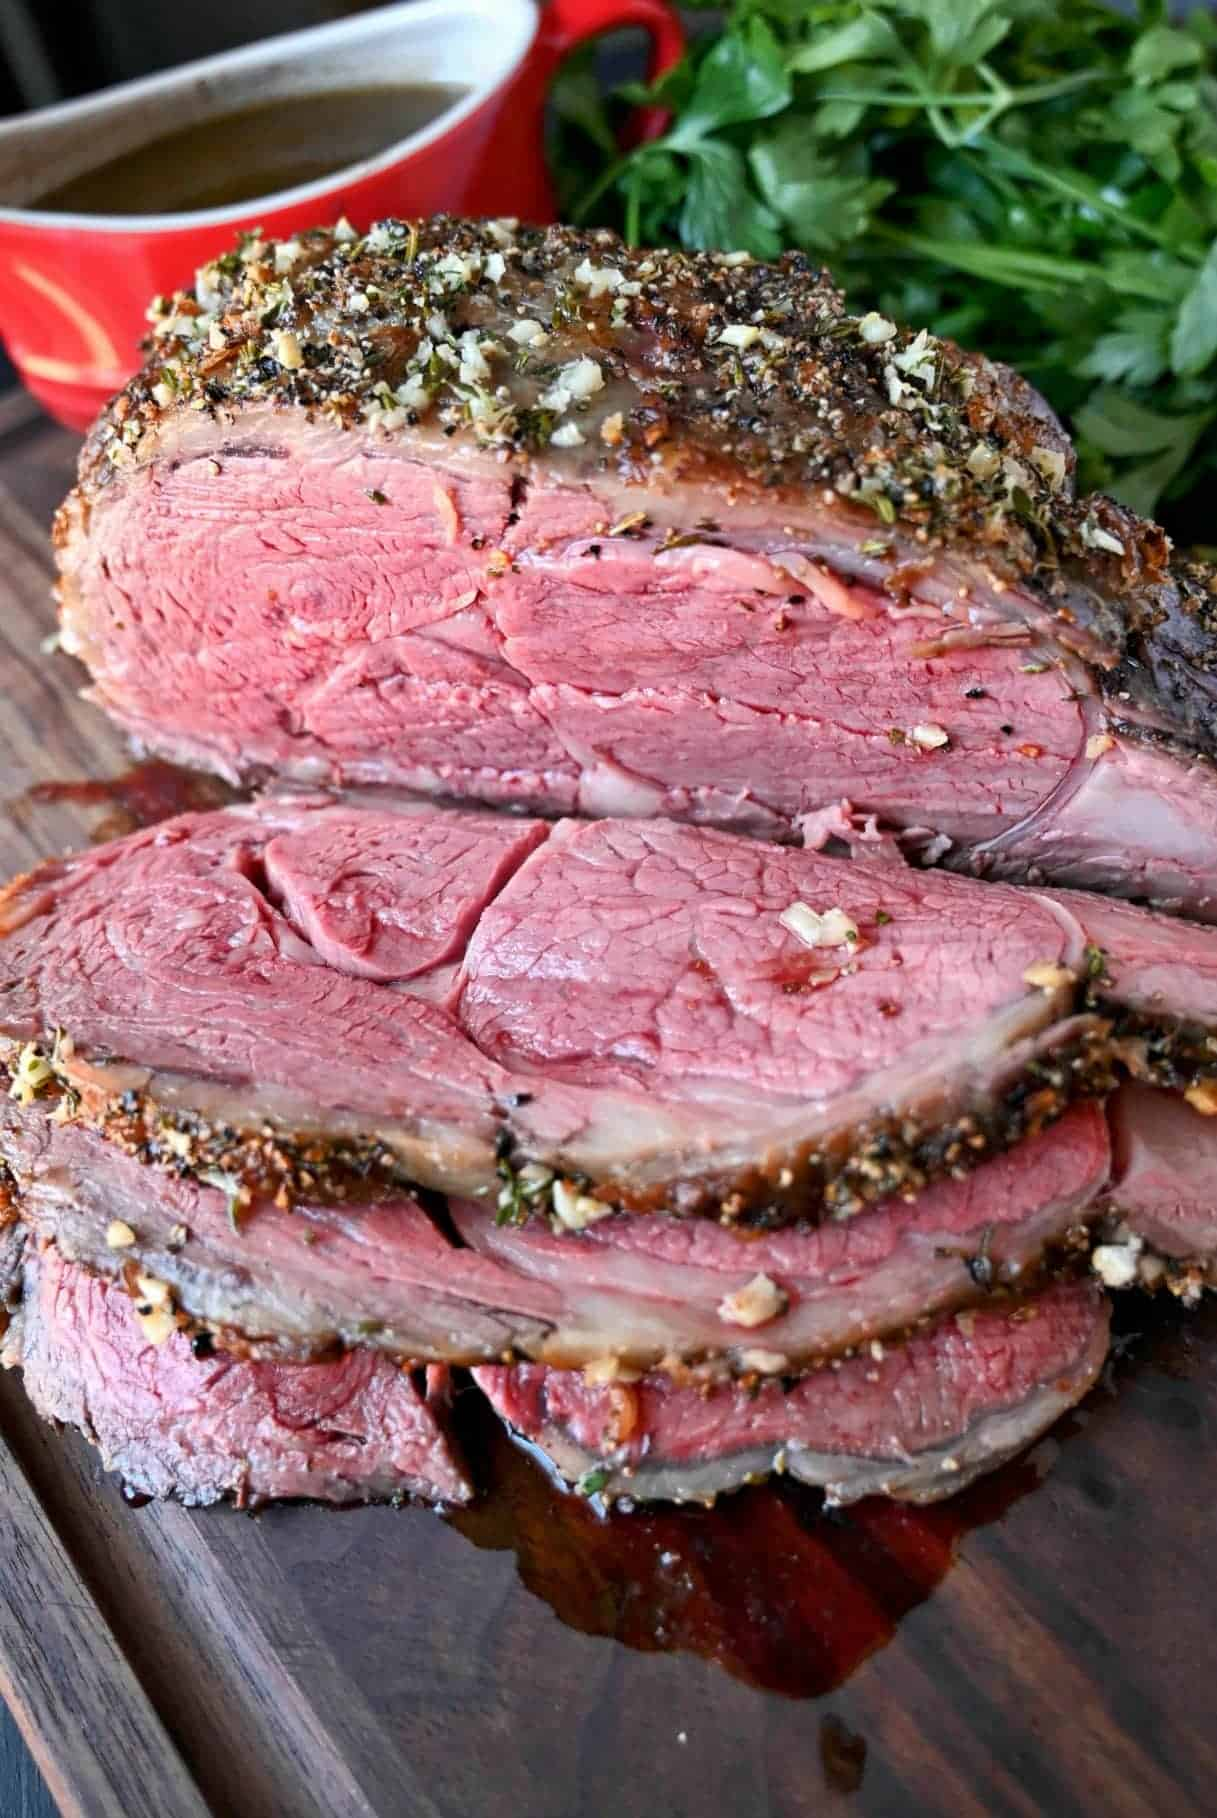 Herb crusted rib eye roast with three thin slices cut out of it.